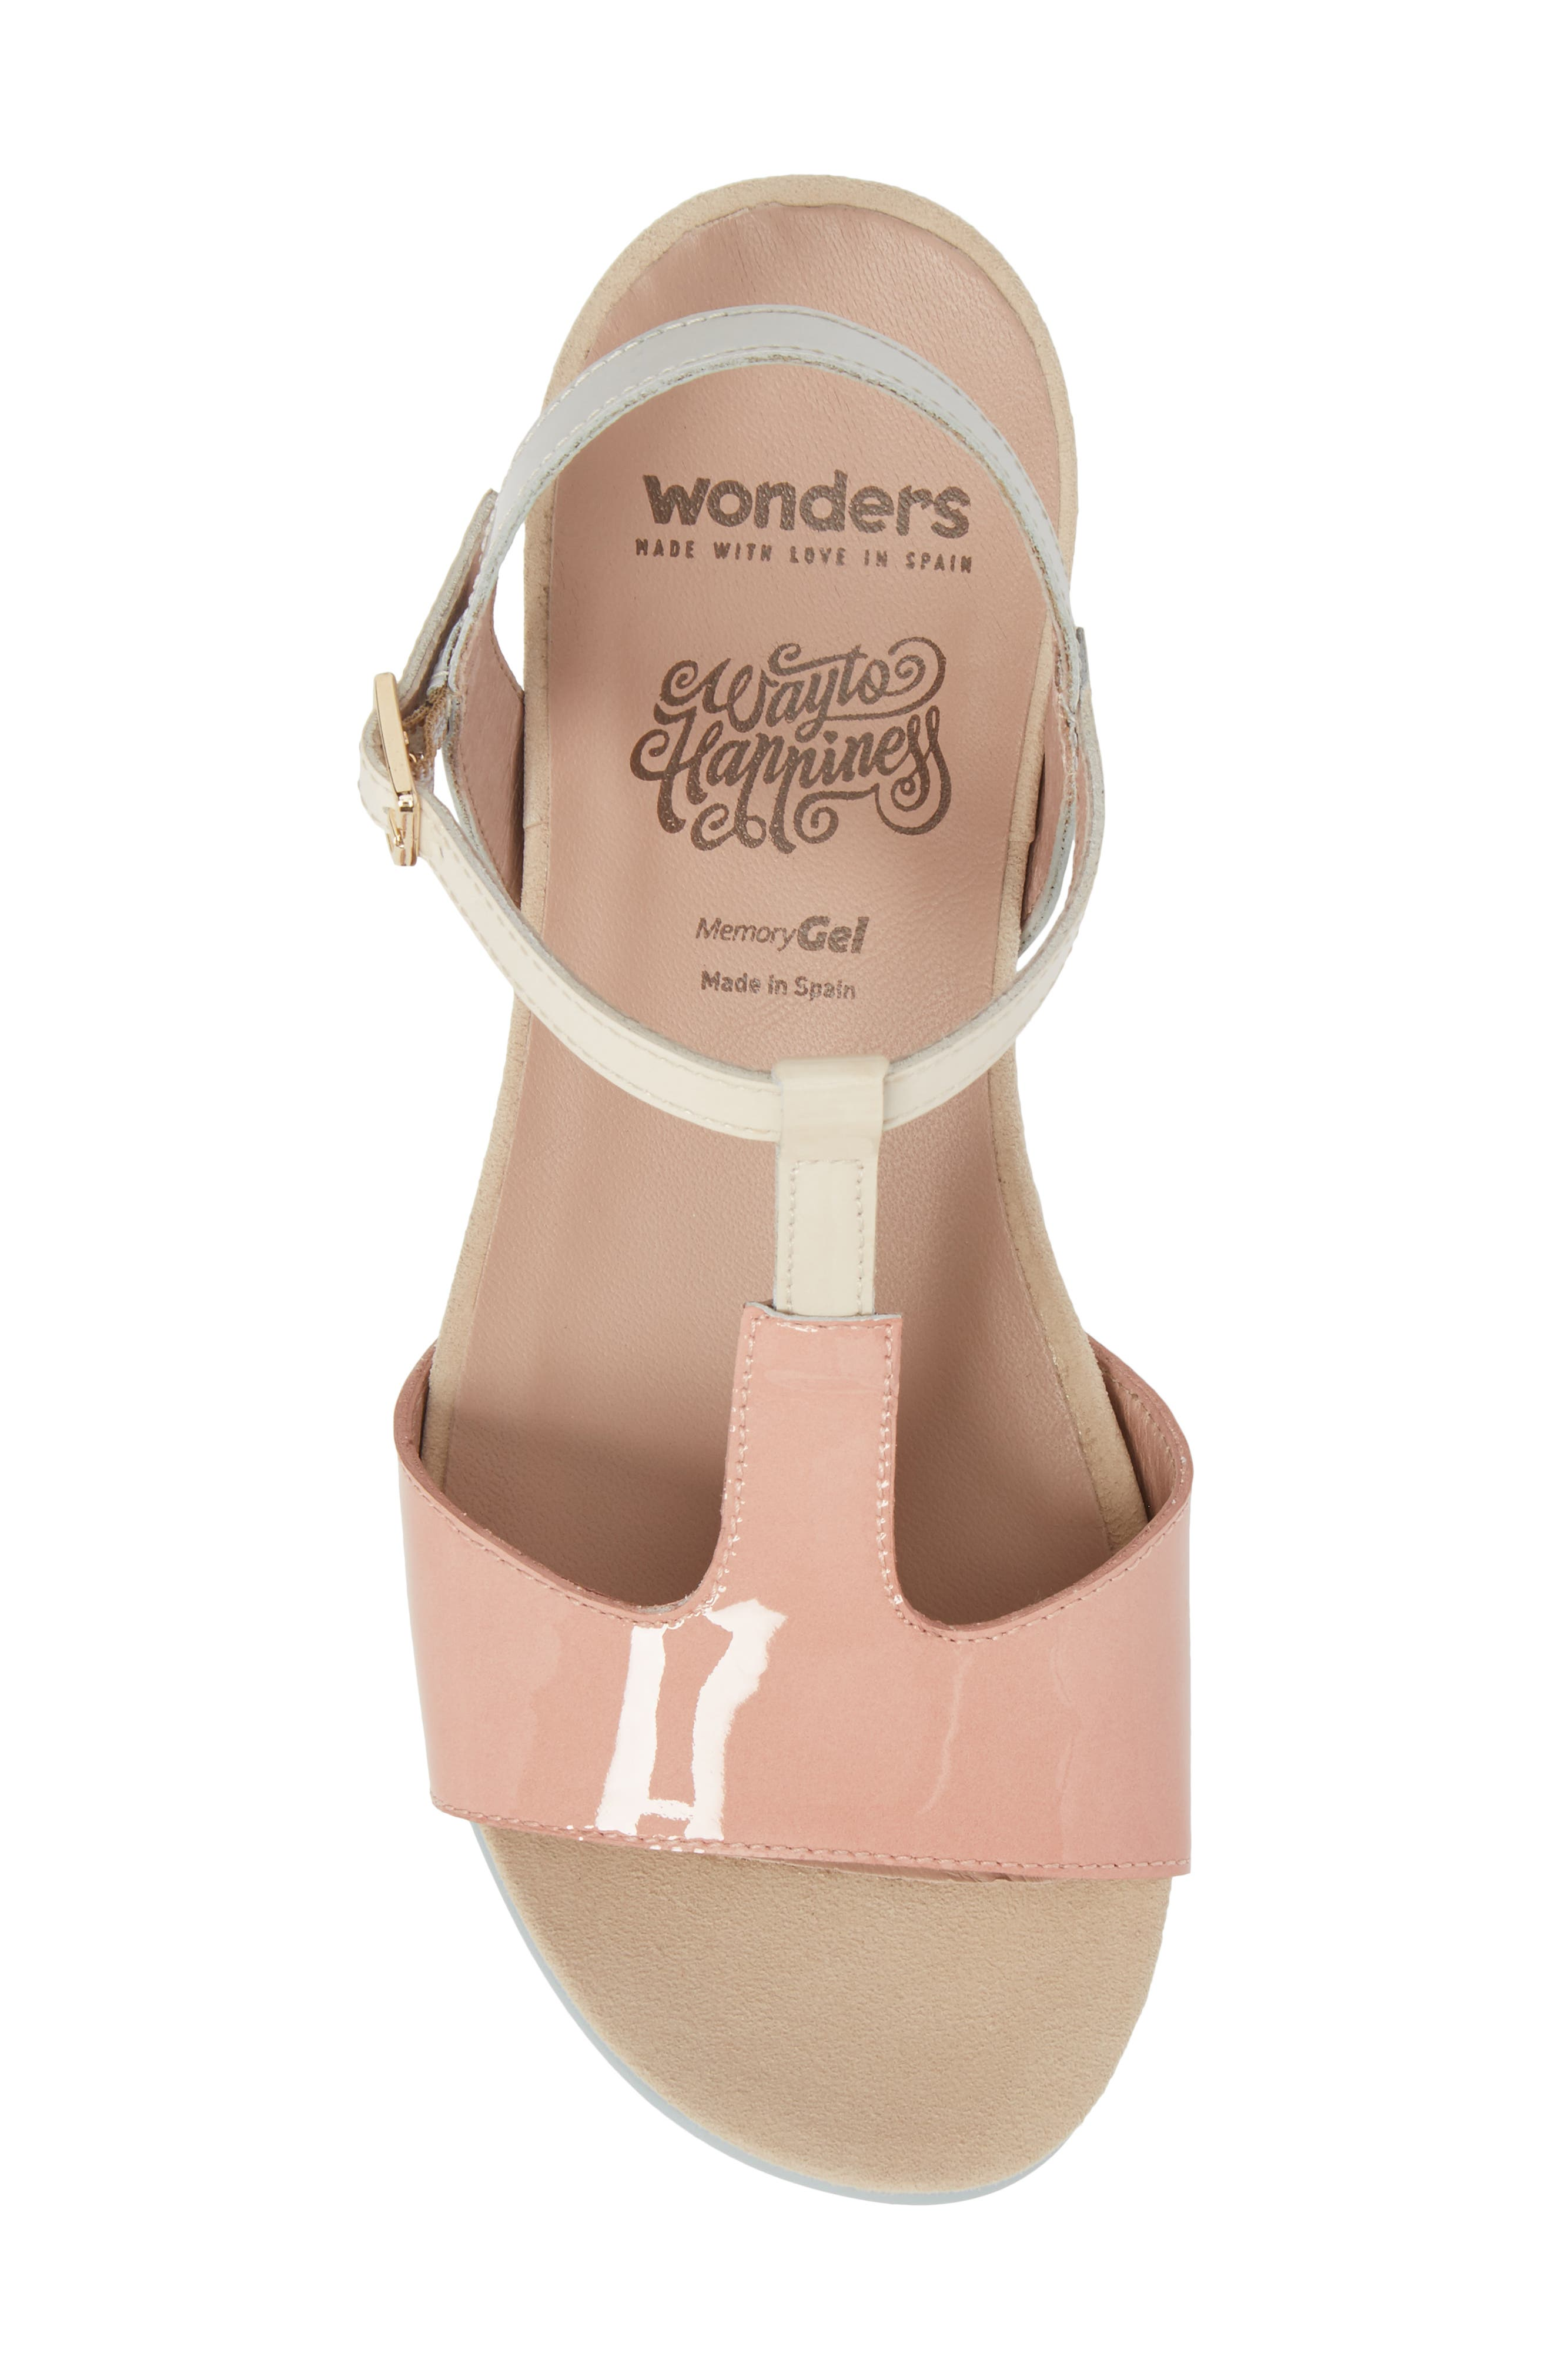 Wedge Sandal,                             Alternate thumbnail 5, color,                             Nude/ Off/ Light Grey Leather